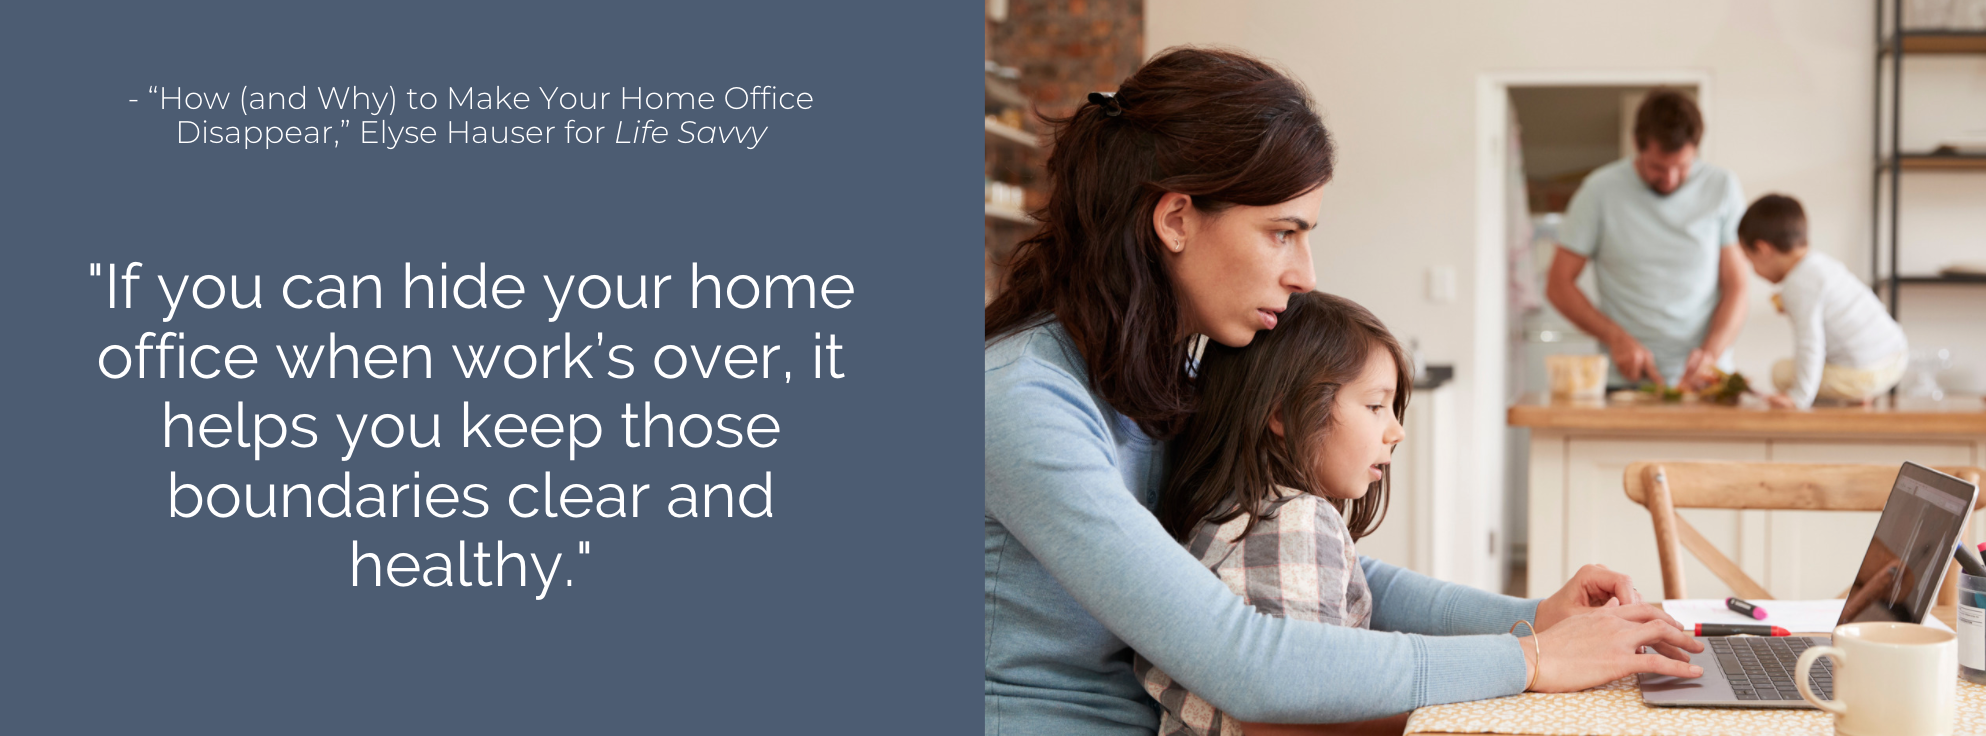 If you can hide your home office when work's over, it helps you keep those boundaries clear and healthy